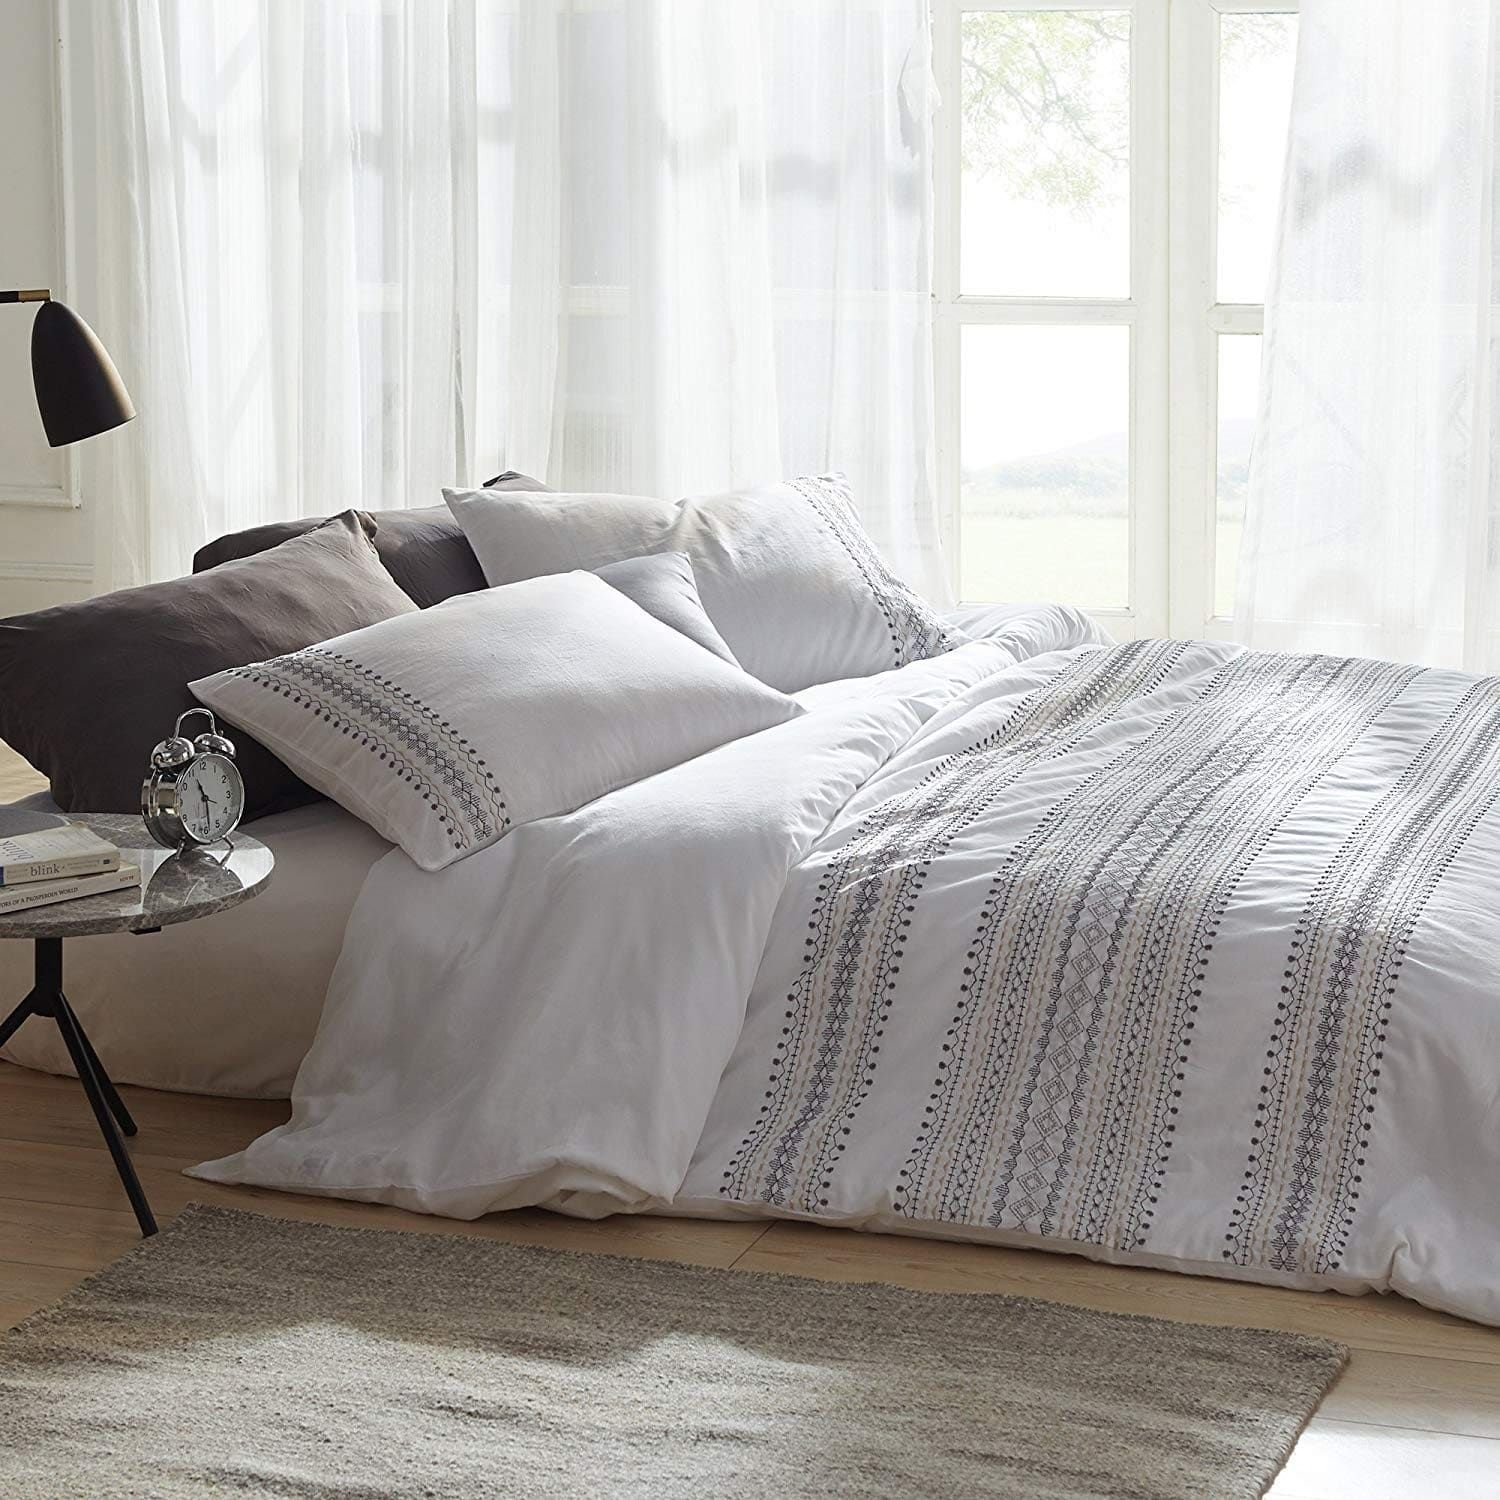 Cambria Stitch Embroidered 3 Piece King Size Duvet Cover In White